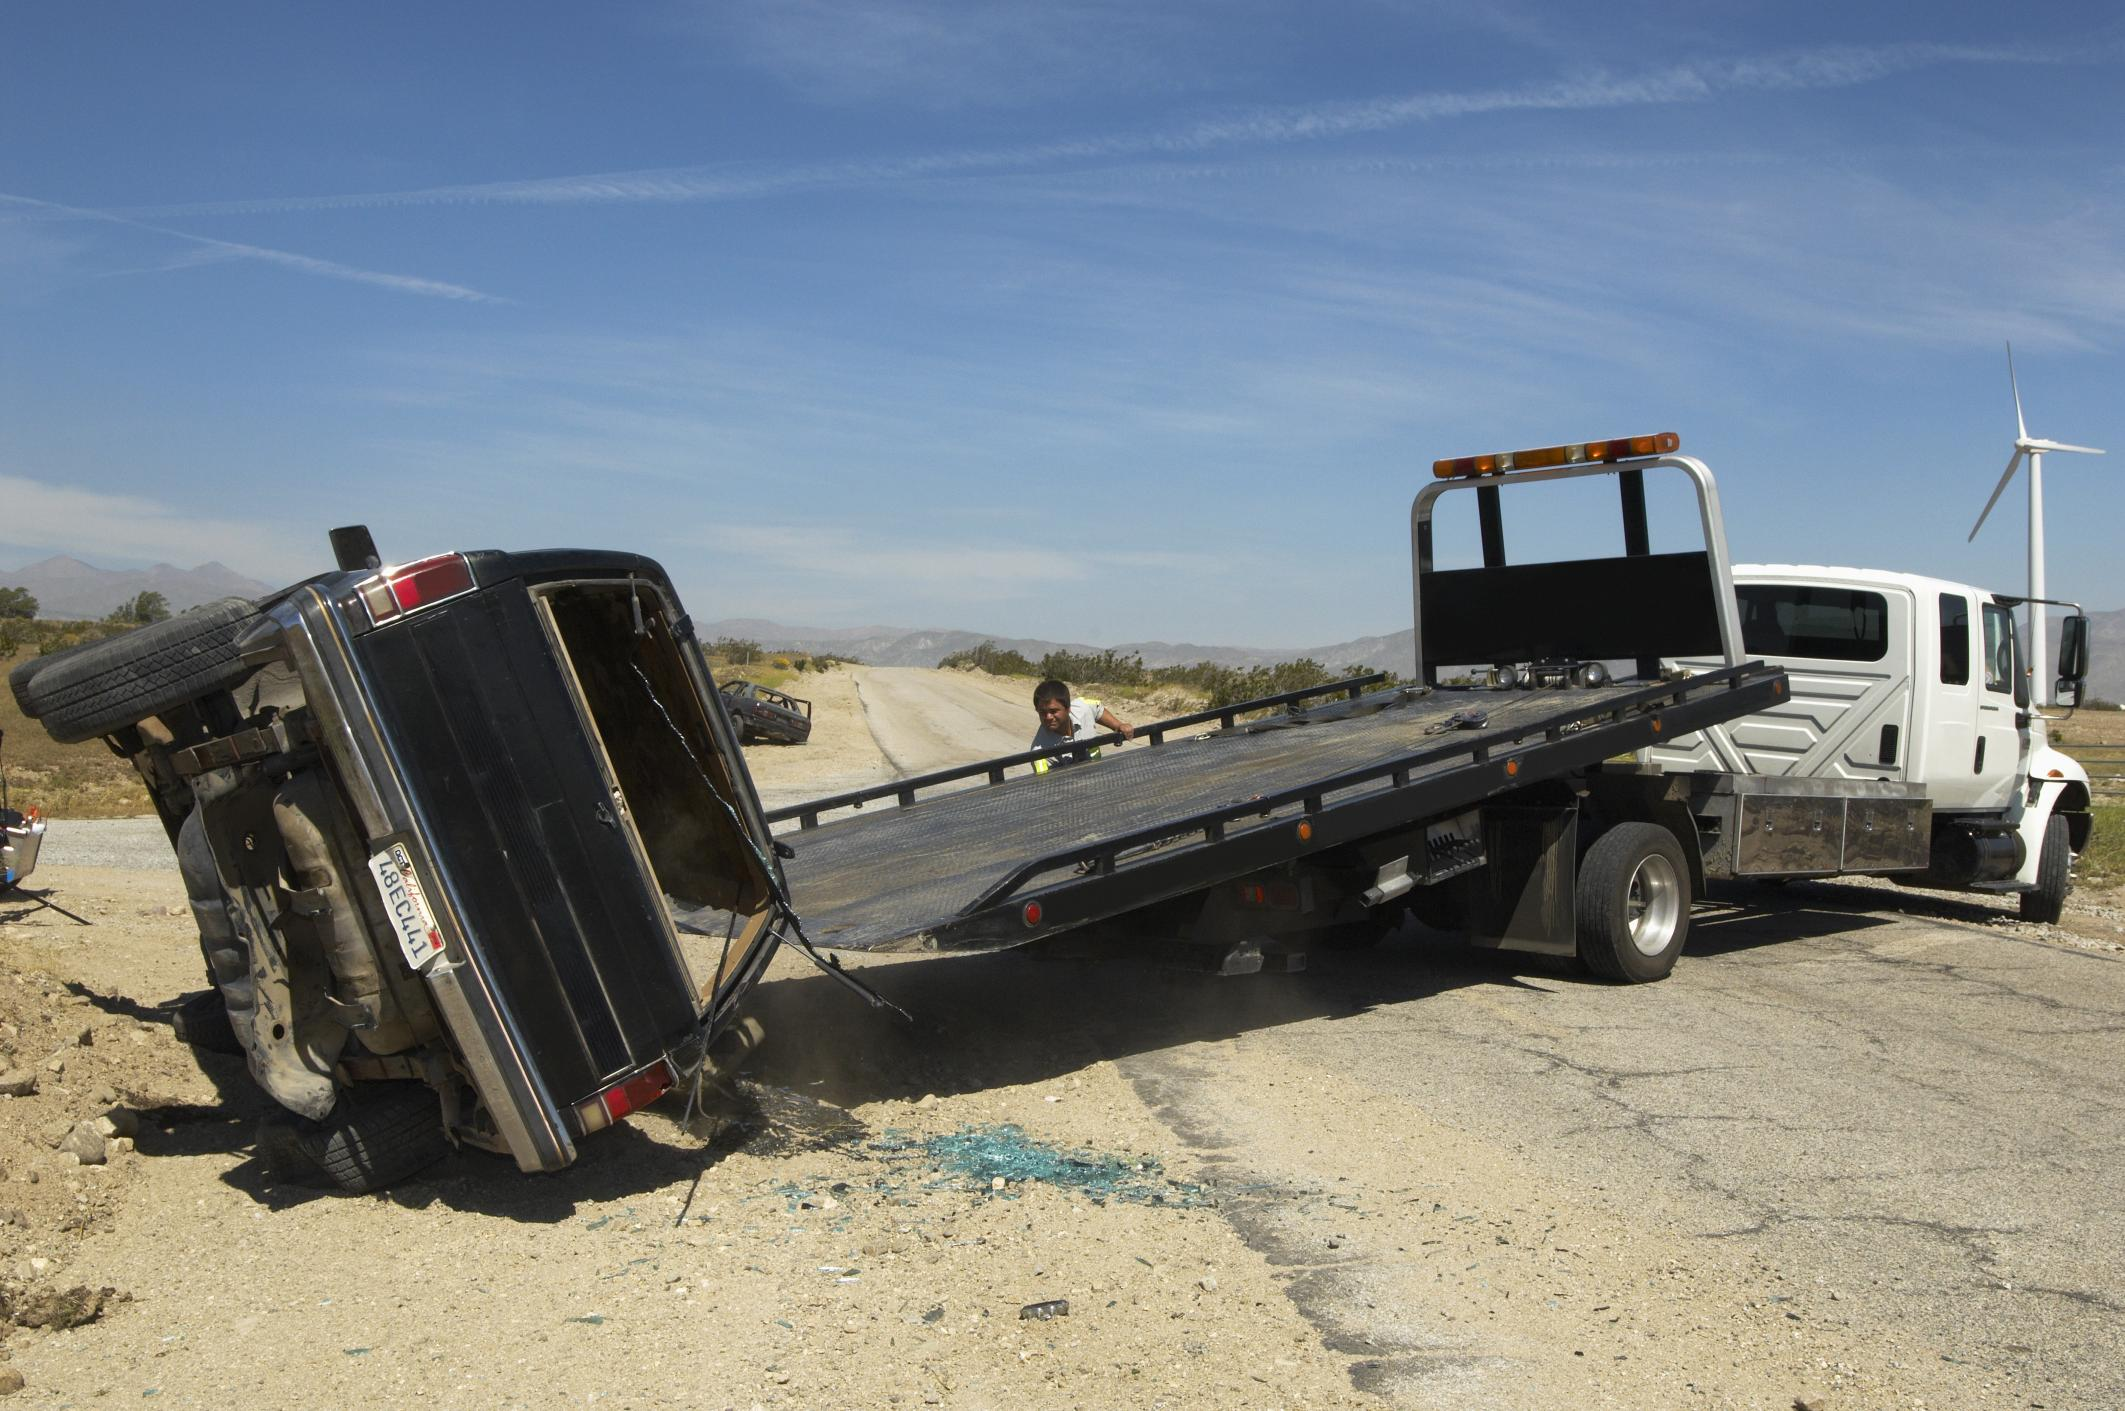 This is a picture of a 24 hour recovery towing.